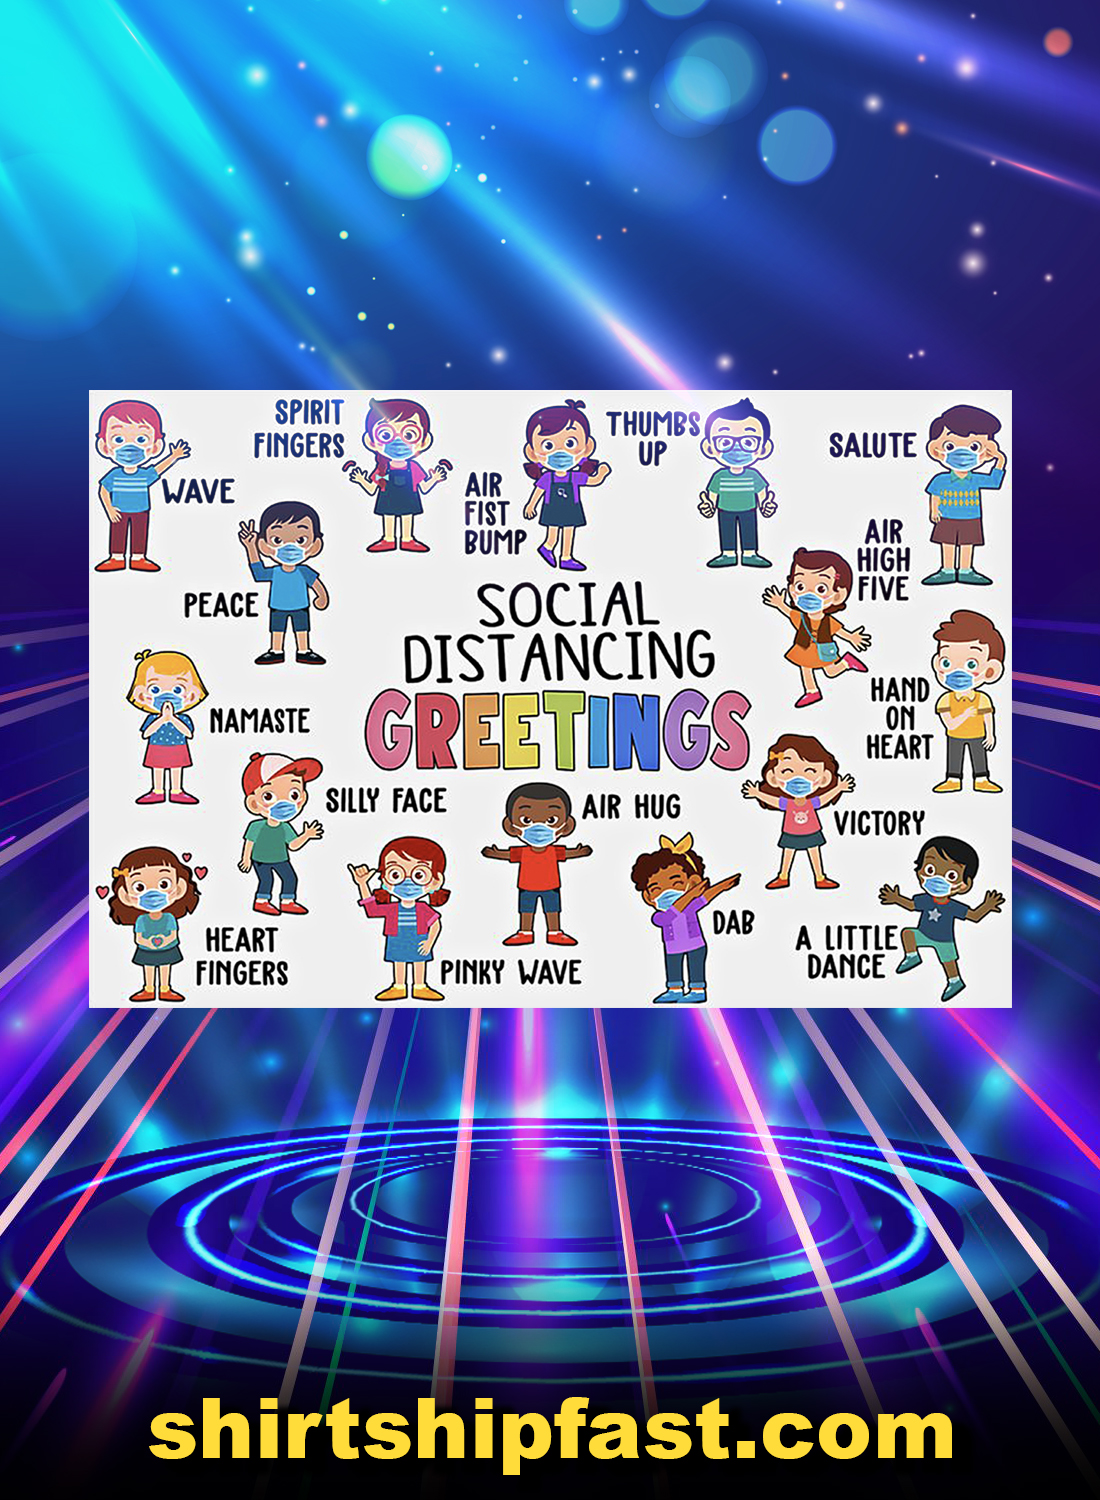 Classroom social distancing greetings poster - A4